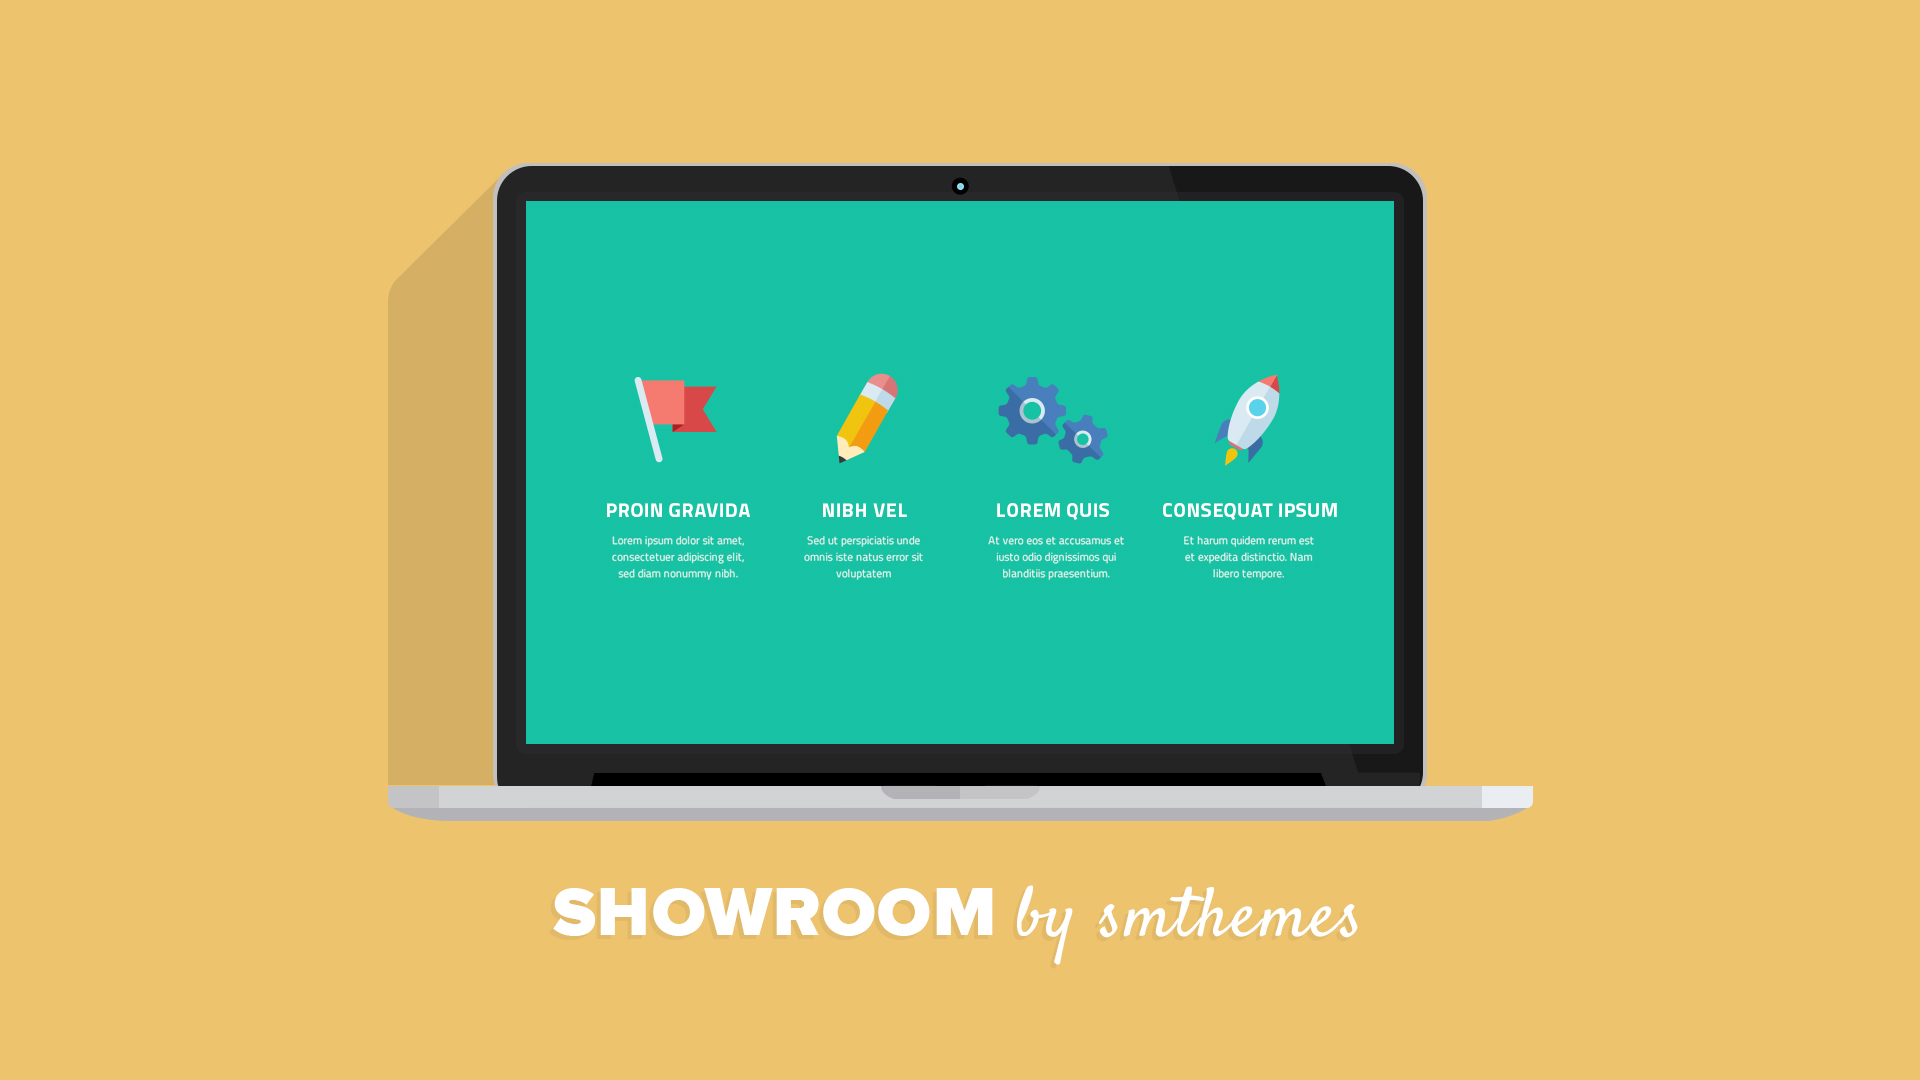 Showroom - New Feature & New Capabilities